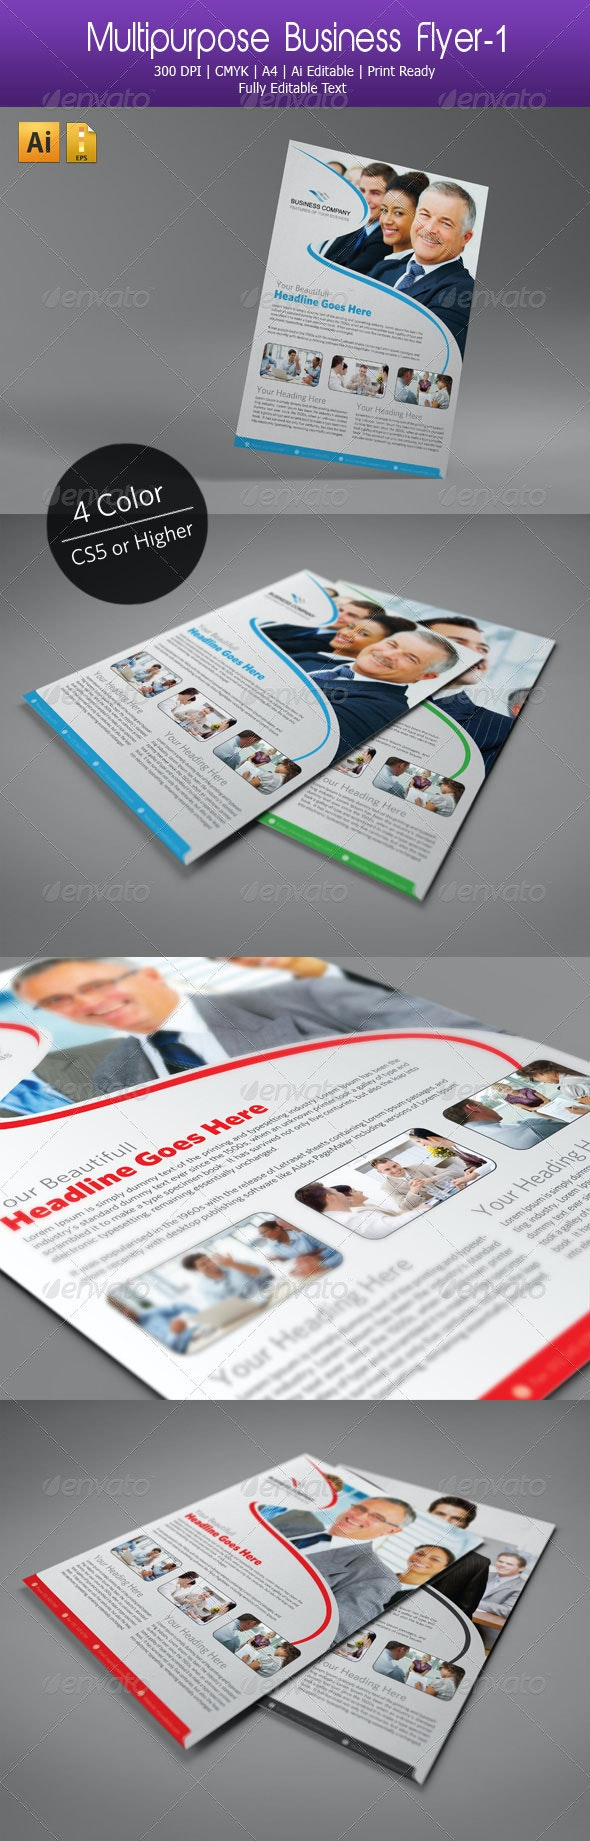 Multipurpose Business Flyer-01 - Corporate Flyers